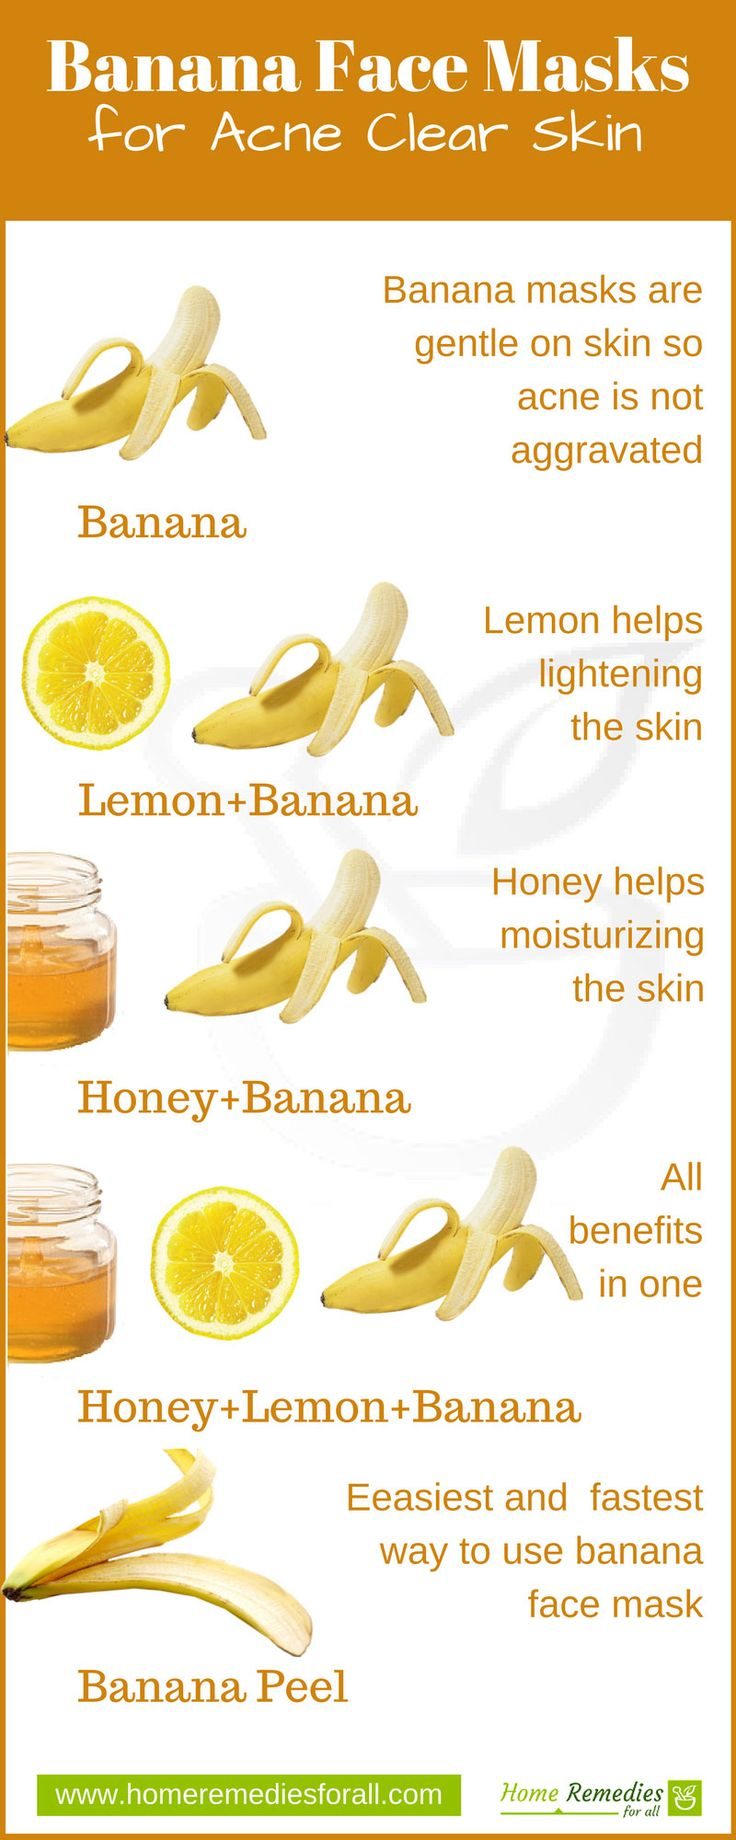 Banana makes some very effective face masks for your skin. Try these 5 face masks to clear your acne and make your skin glow.